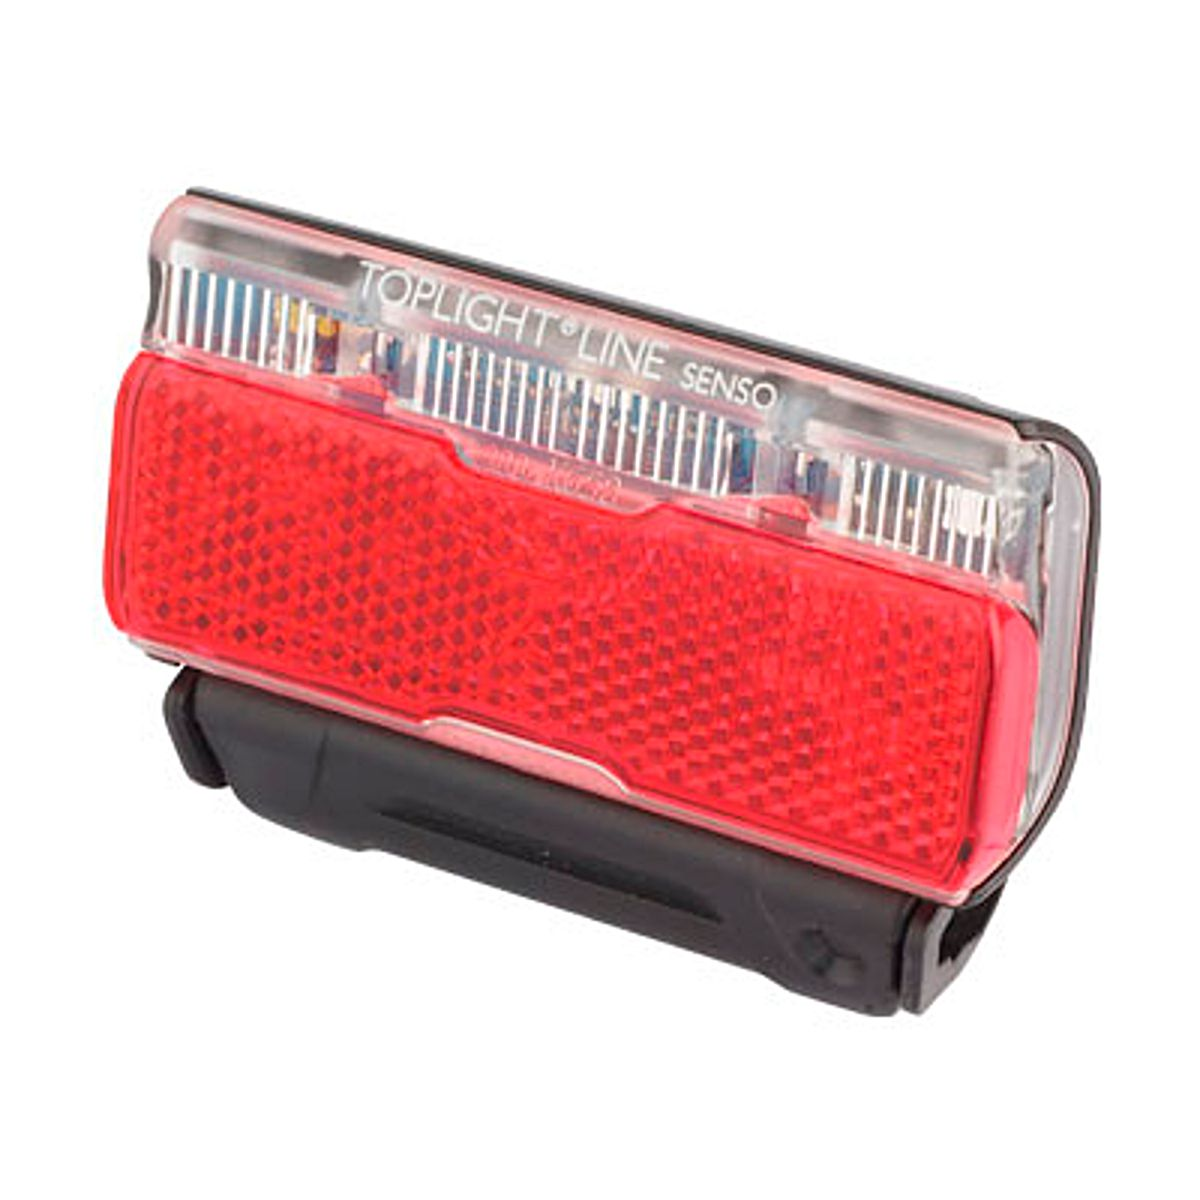 Toplight Line senso battery-powered rear light